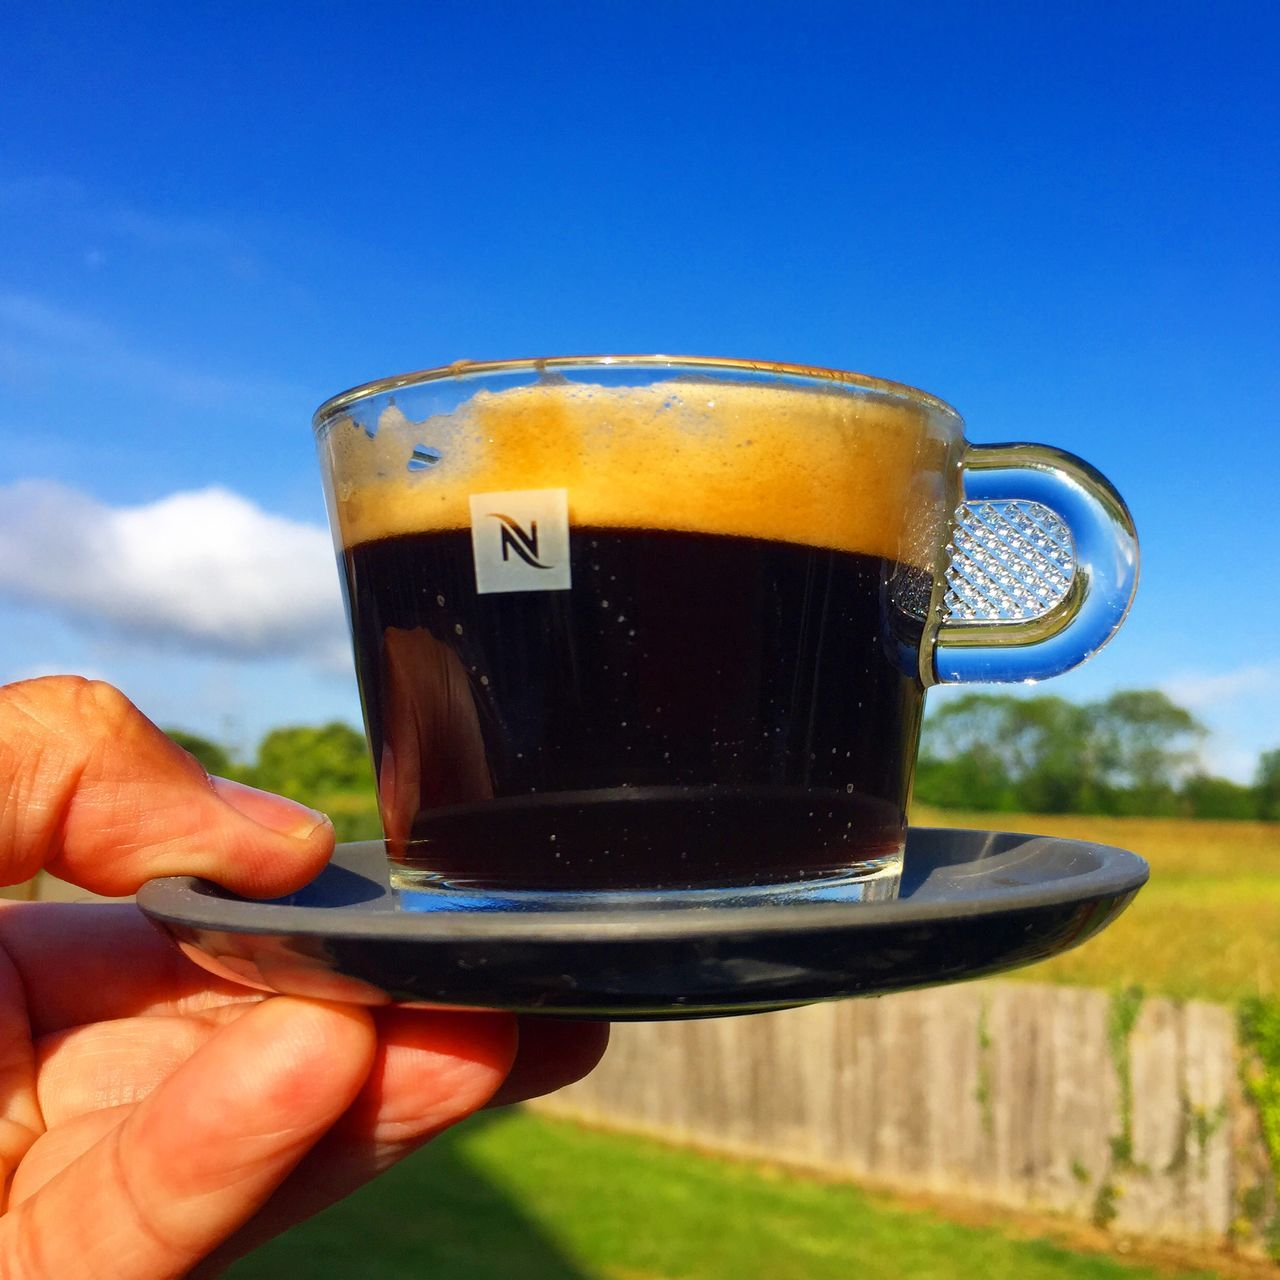 Nespresso coffee in a glass cup in the sun in Northamptonshire Coffee Northamptonshire Nespresso Nespresso Time Nespresso Time!!! Nespressomoments I Love Nespresso Coffee Time Coffee Break Coffee At Home Breakfast Coffee ☕ Coffeebreak Drinking Coffee Northampton Northamptonshire Sun Weather